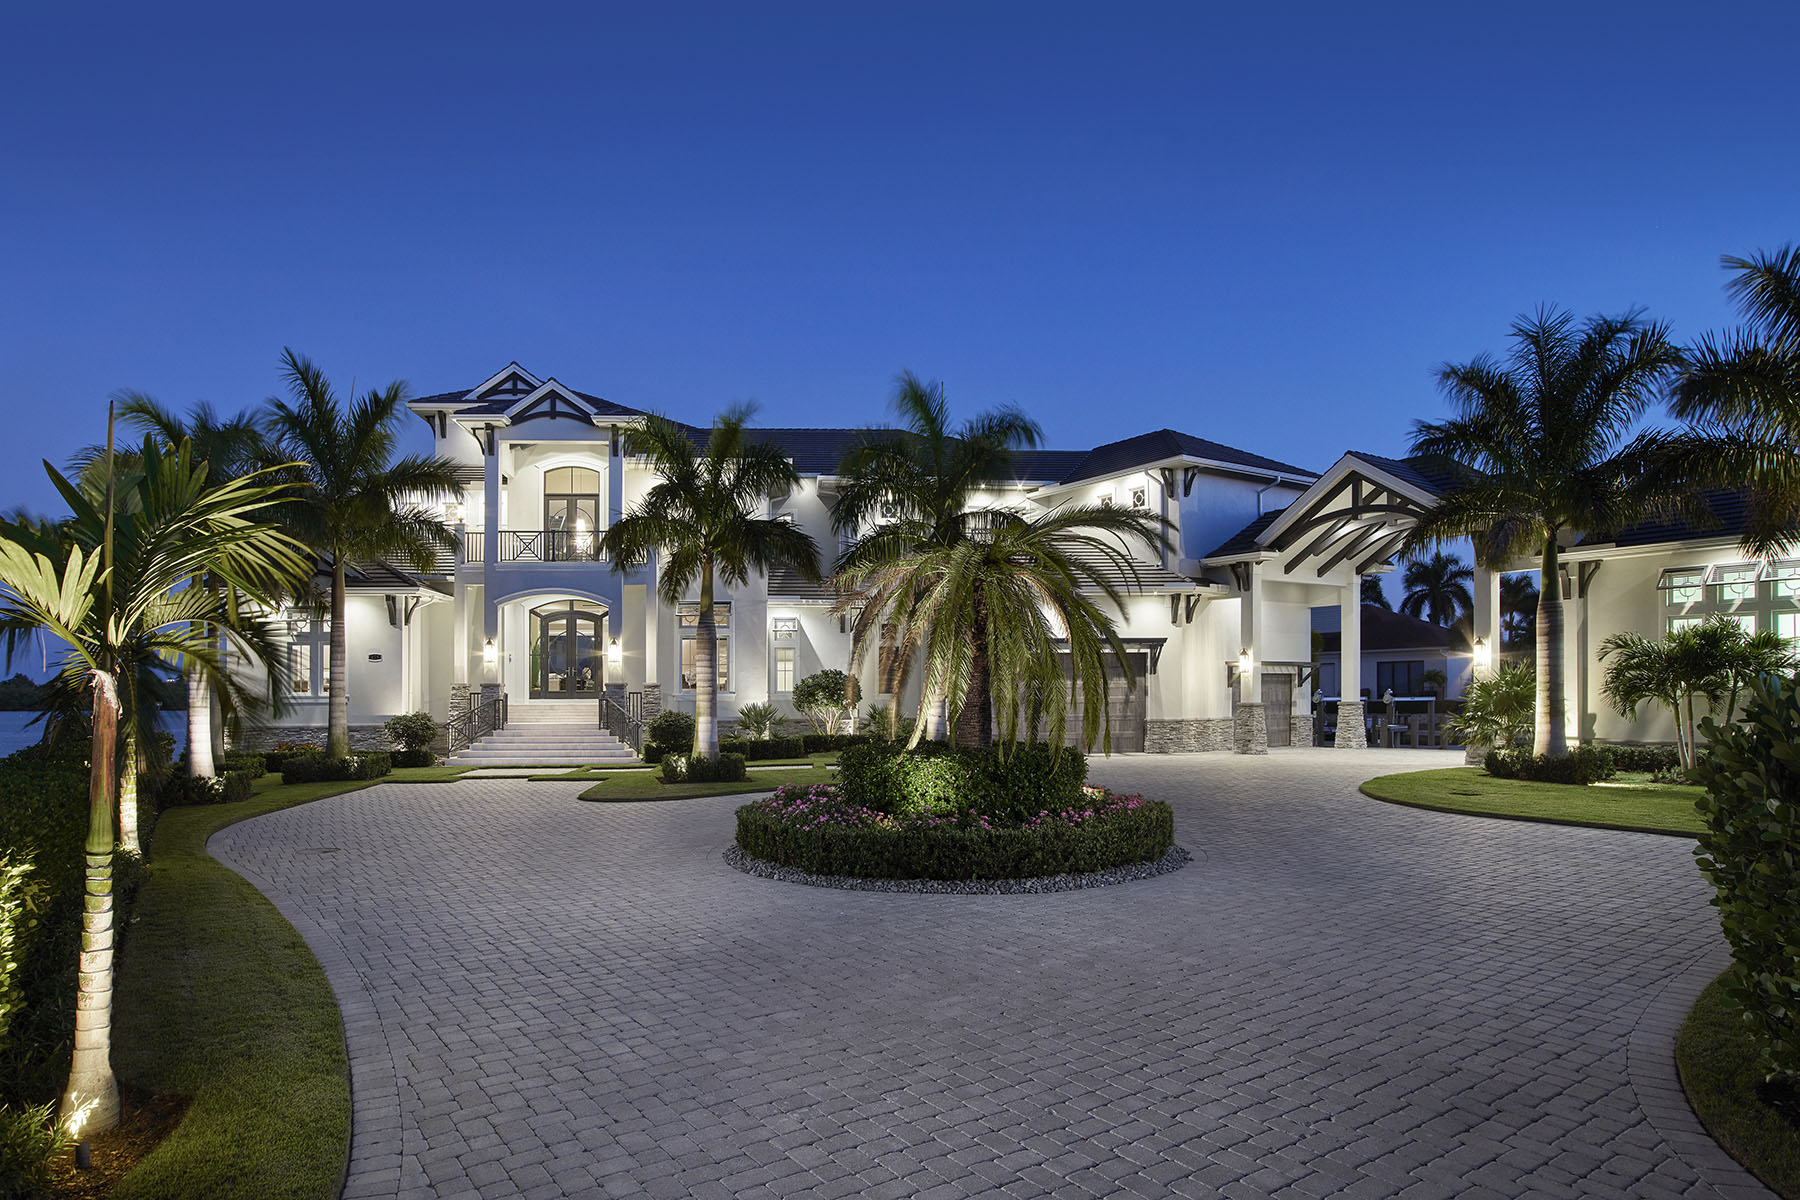 Single Family Homes for Sale at MARCO ISLAND - HIDEAWAY BEACH 475 Gate House Court Marco Island, Florida 34145 United States